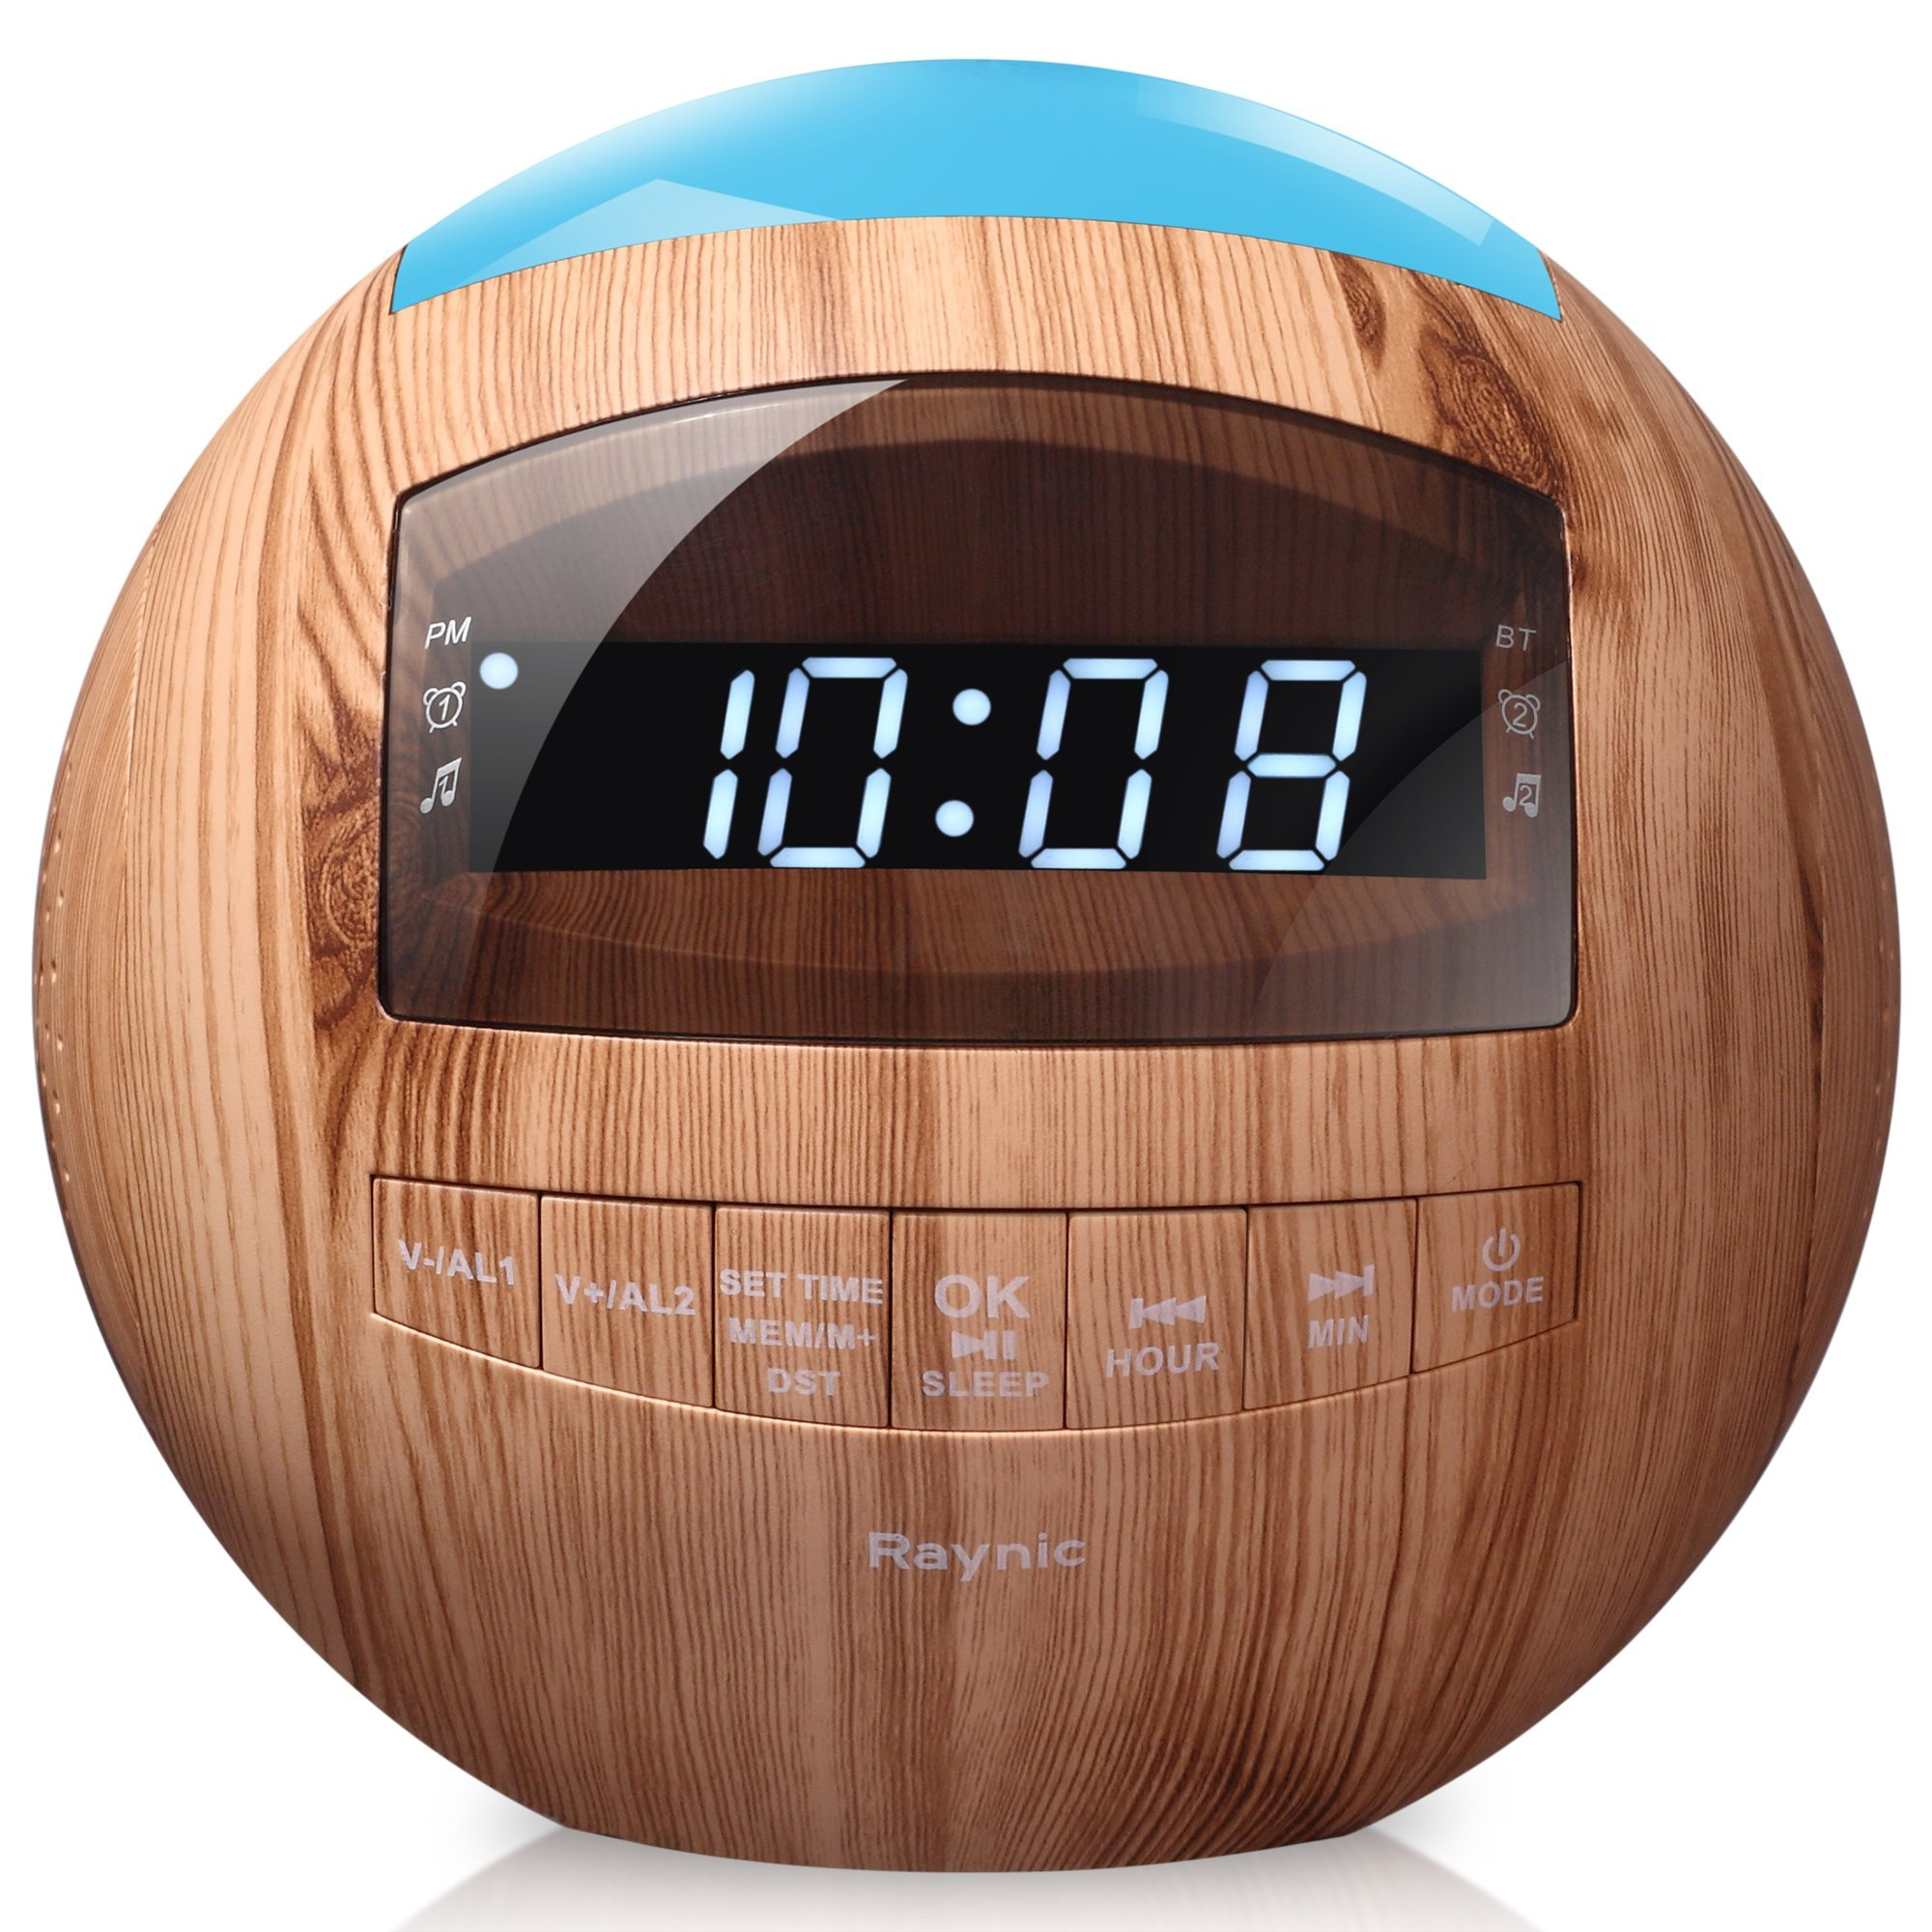 8-in-1 Bluetooth Alarm Clock Radio (Digital) Dual USB Charging Ports, FM Stereo, Dimmable LED Display, Nap & Sleep Timers, Snooze, Multi-Color Night Light (Wooden) by Raynic